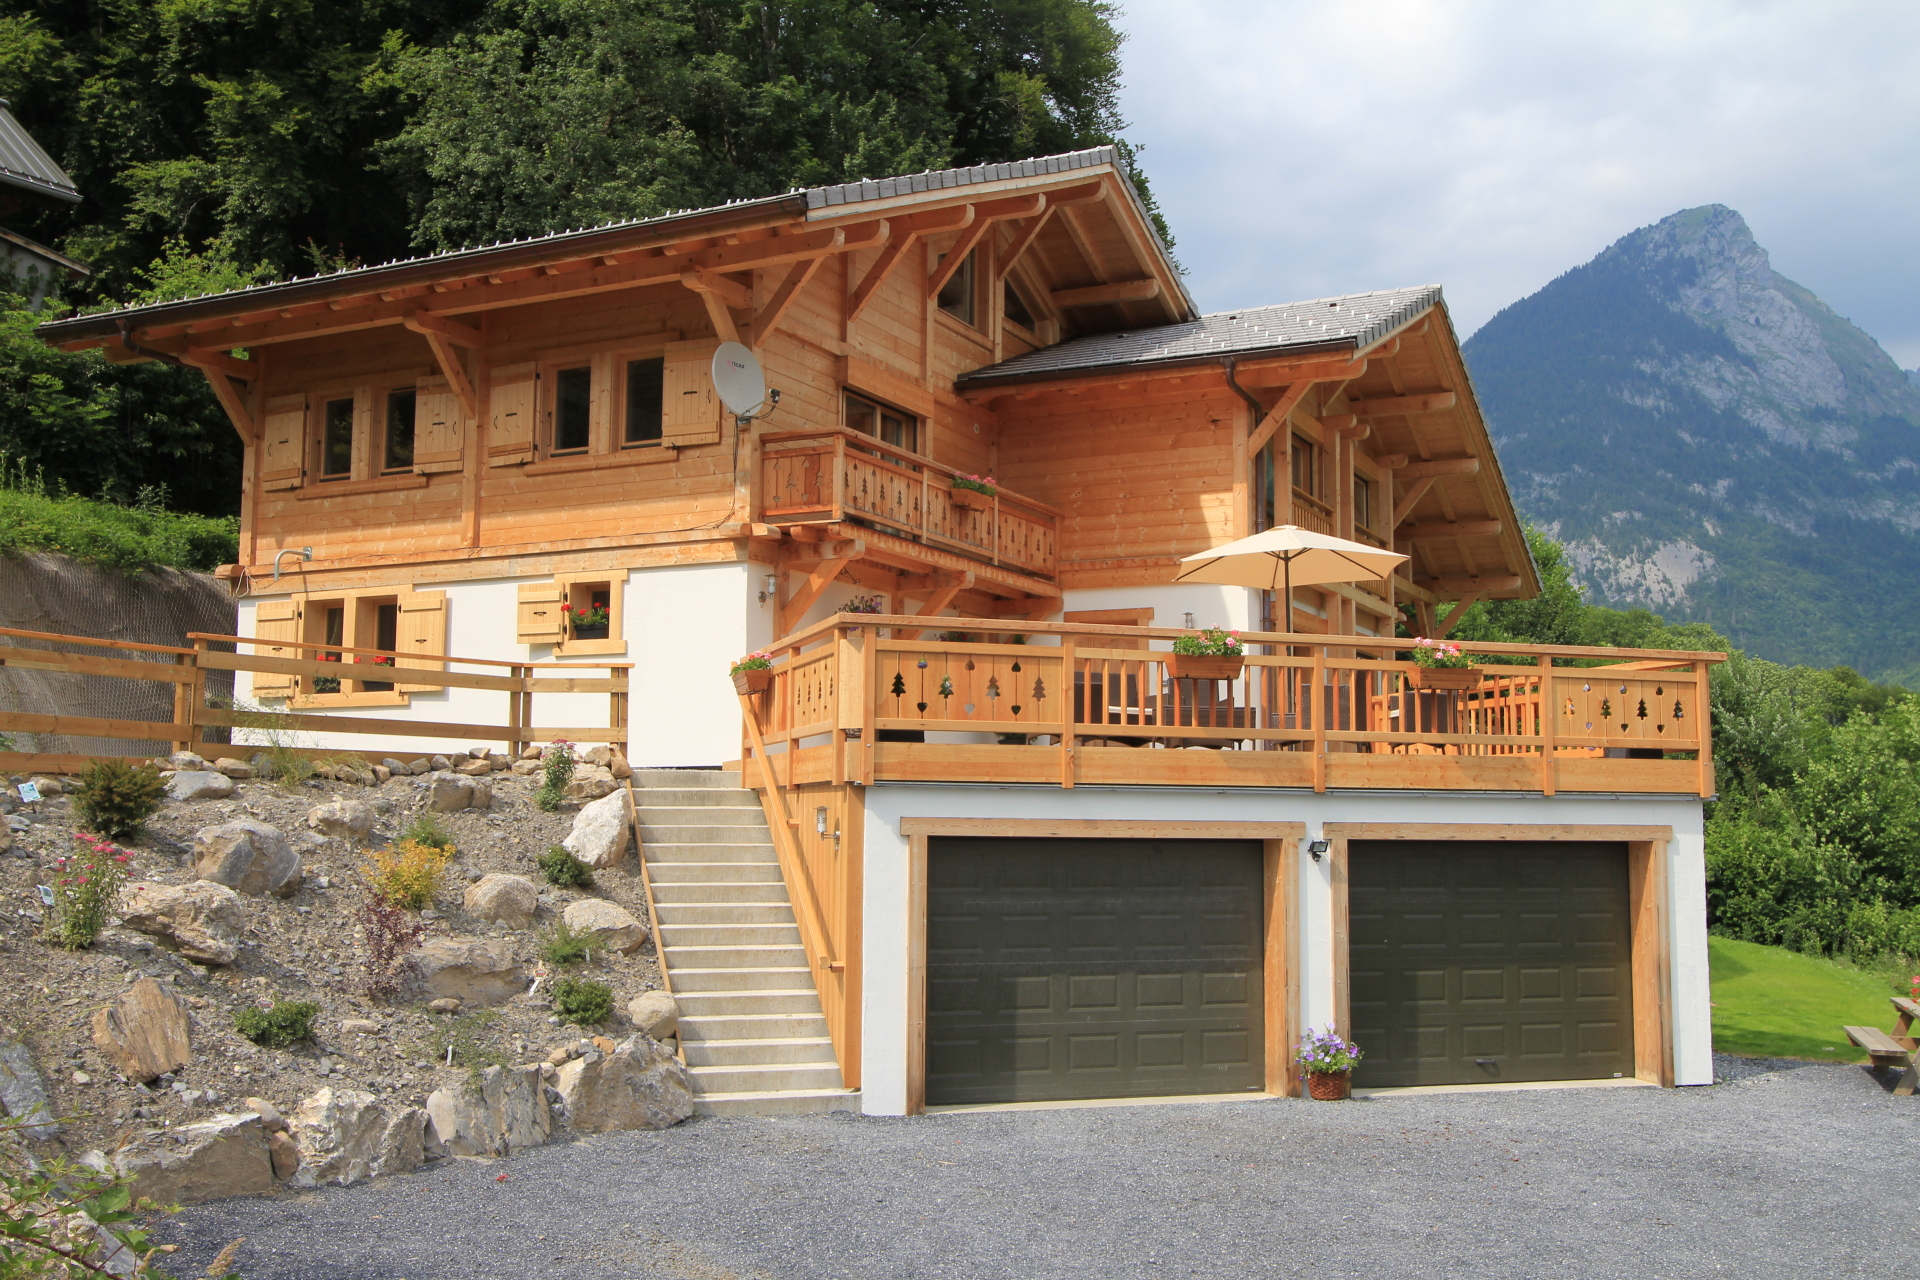 New balconies, terrace & landscaping on Samoens chalet | Renovation Solutions